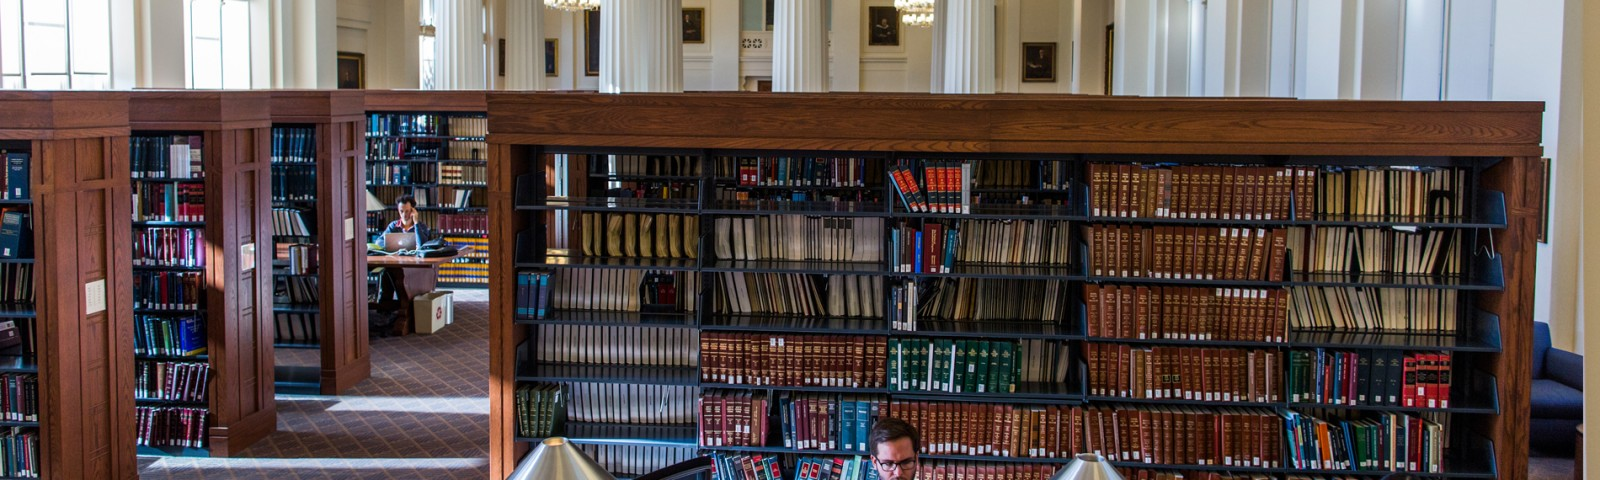 Students sit at a table and study in front of shelves of books in the Harvard Law Library.